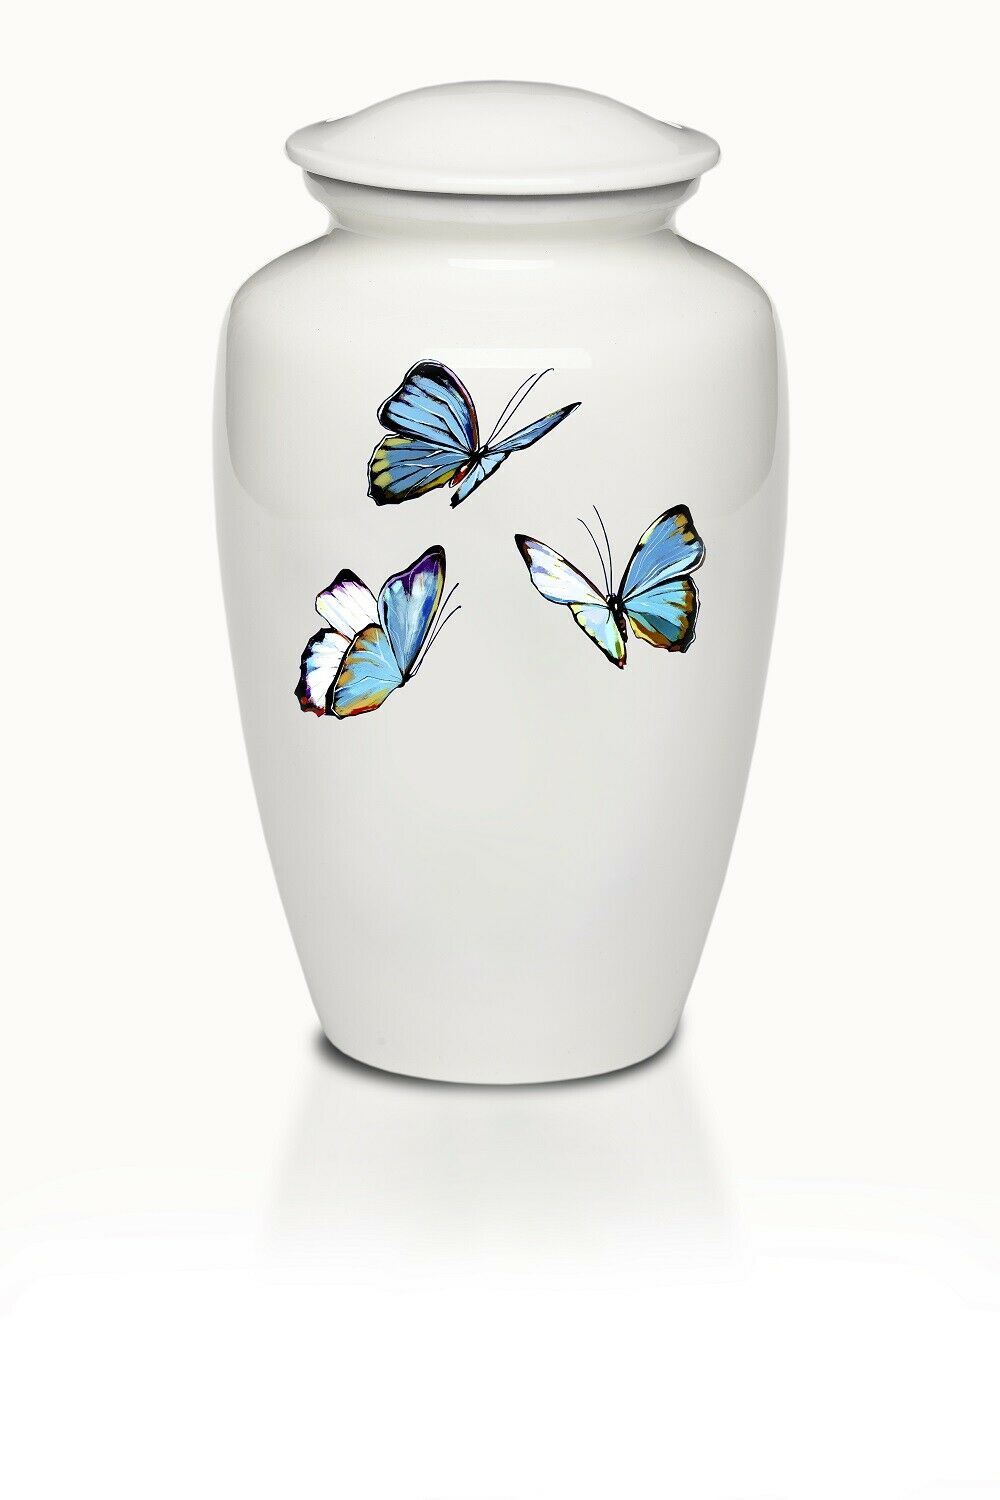 Large/Adult 220 Cu. In. Alloy Blue Butterflies  Funeral Cremation Urn for Ashes